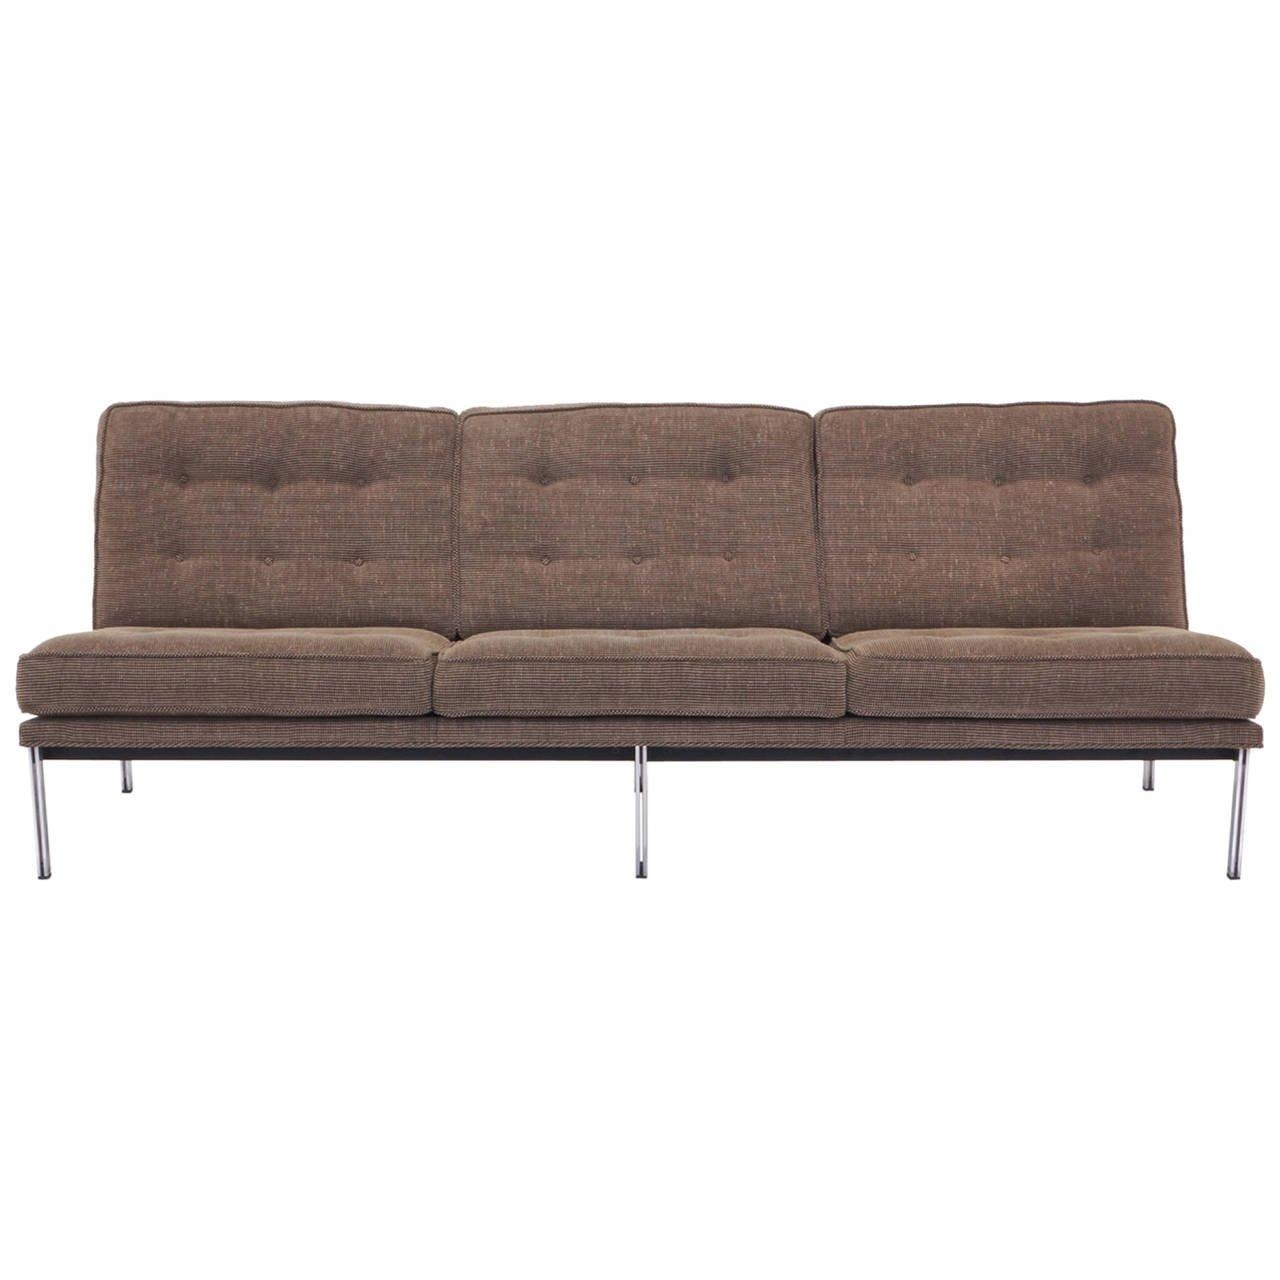 Florence Knoll Parallel Bar Three Seat Armless Sofa At 1Stdibs Pertaining To Florence Grand Sofas (Image 7 of 20)